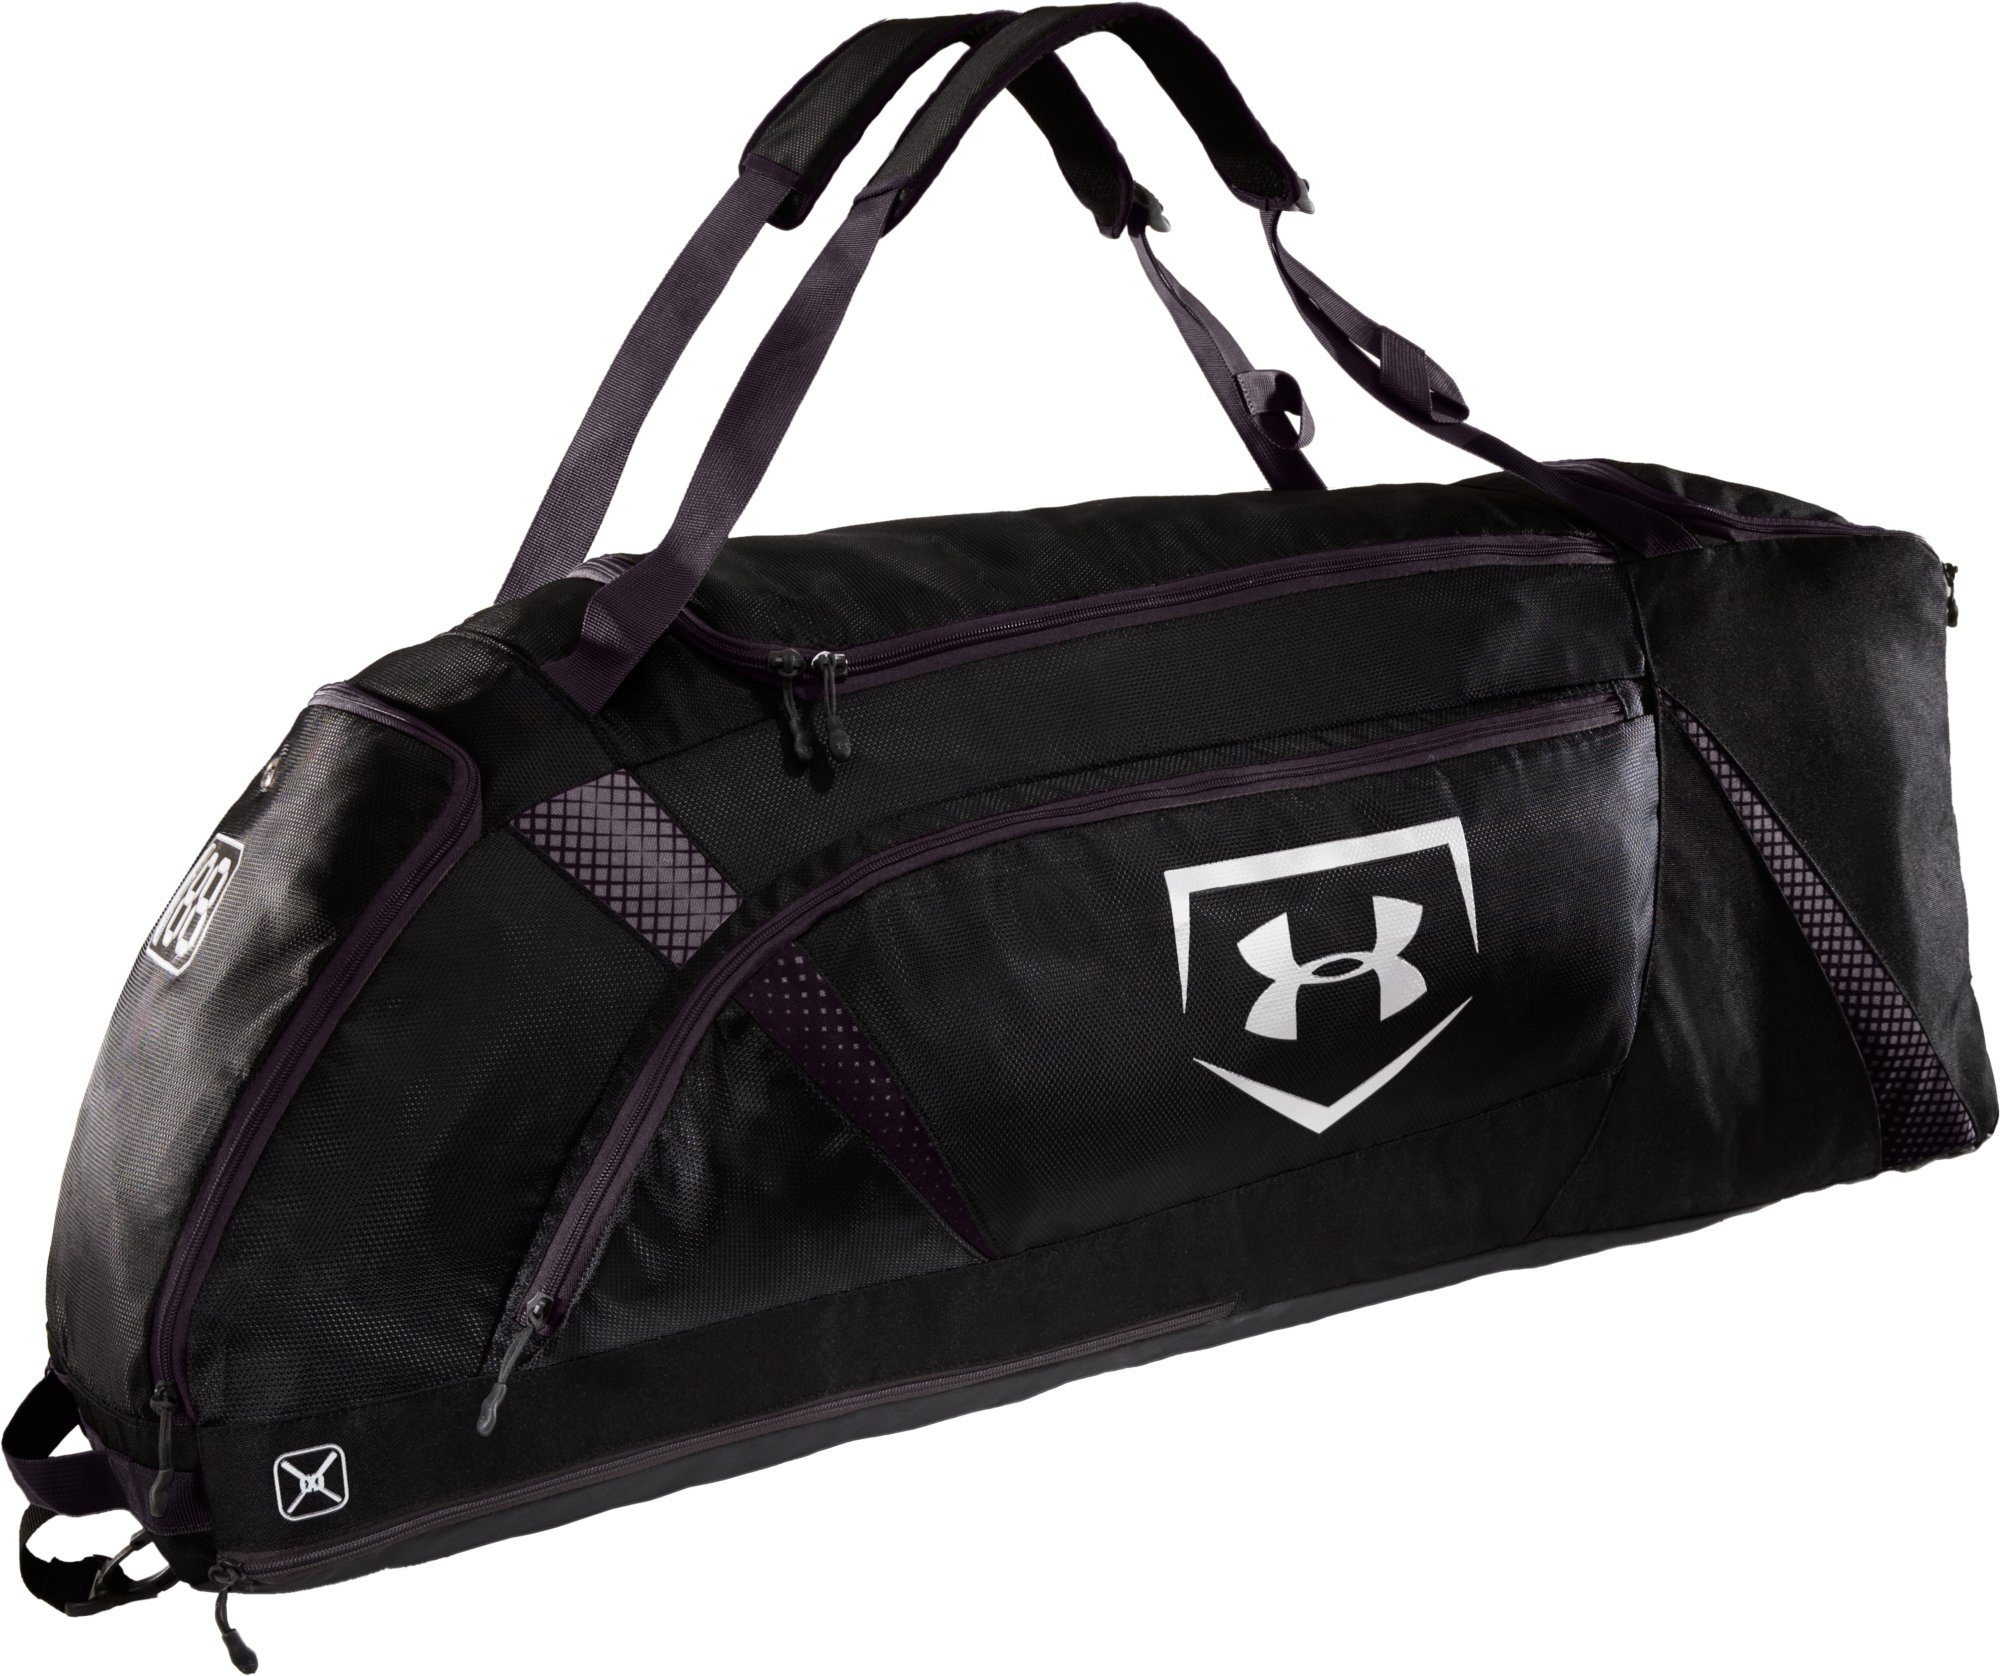 my name is asks about ua downtowner baseball bat bag needle